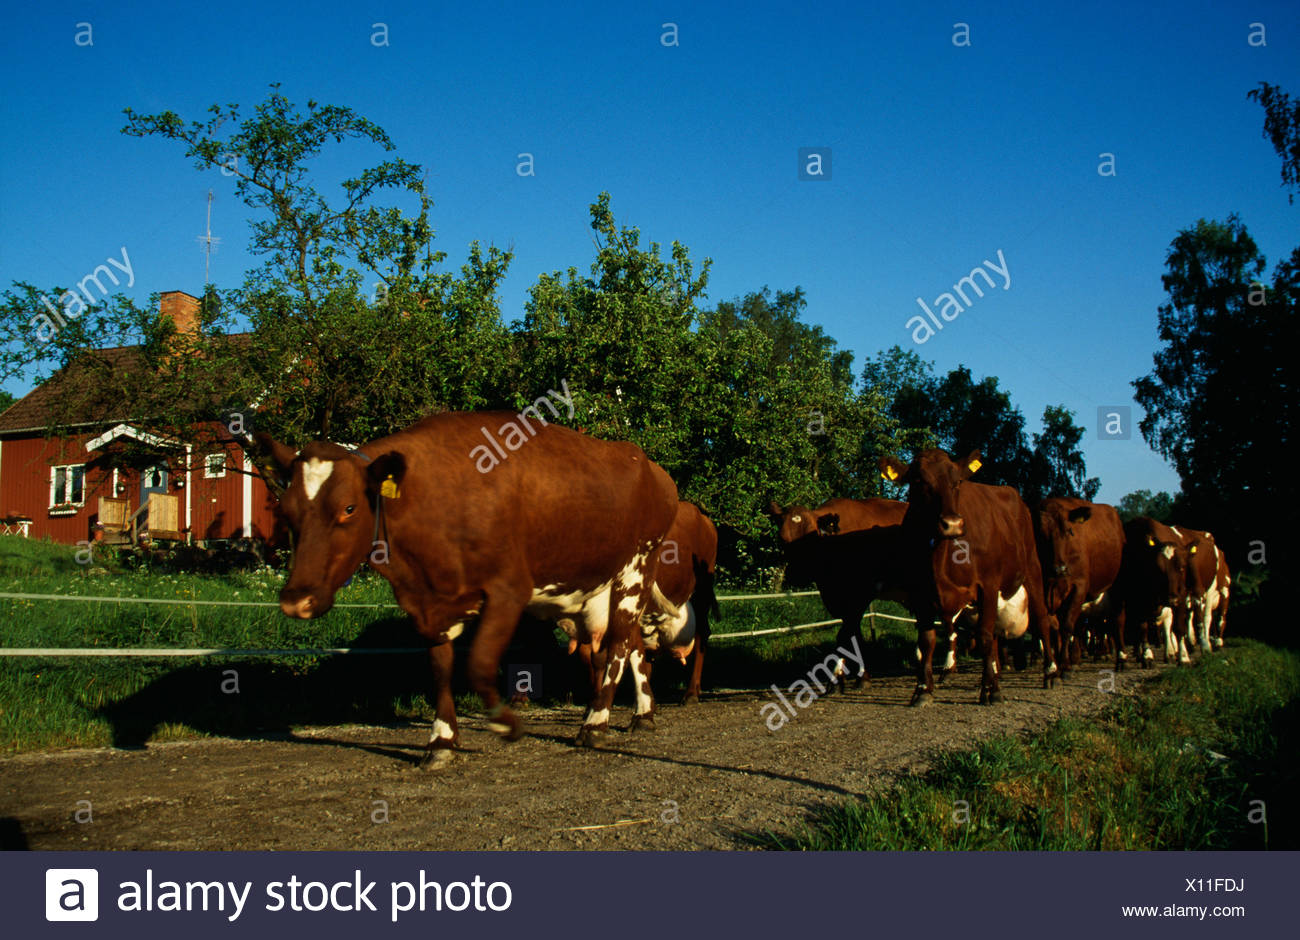 Cattle on the move - Stock Image